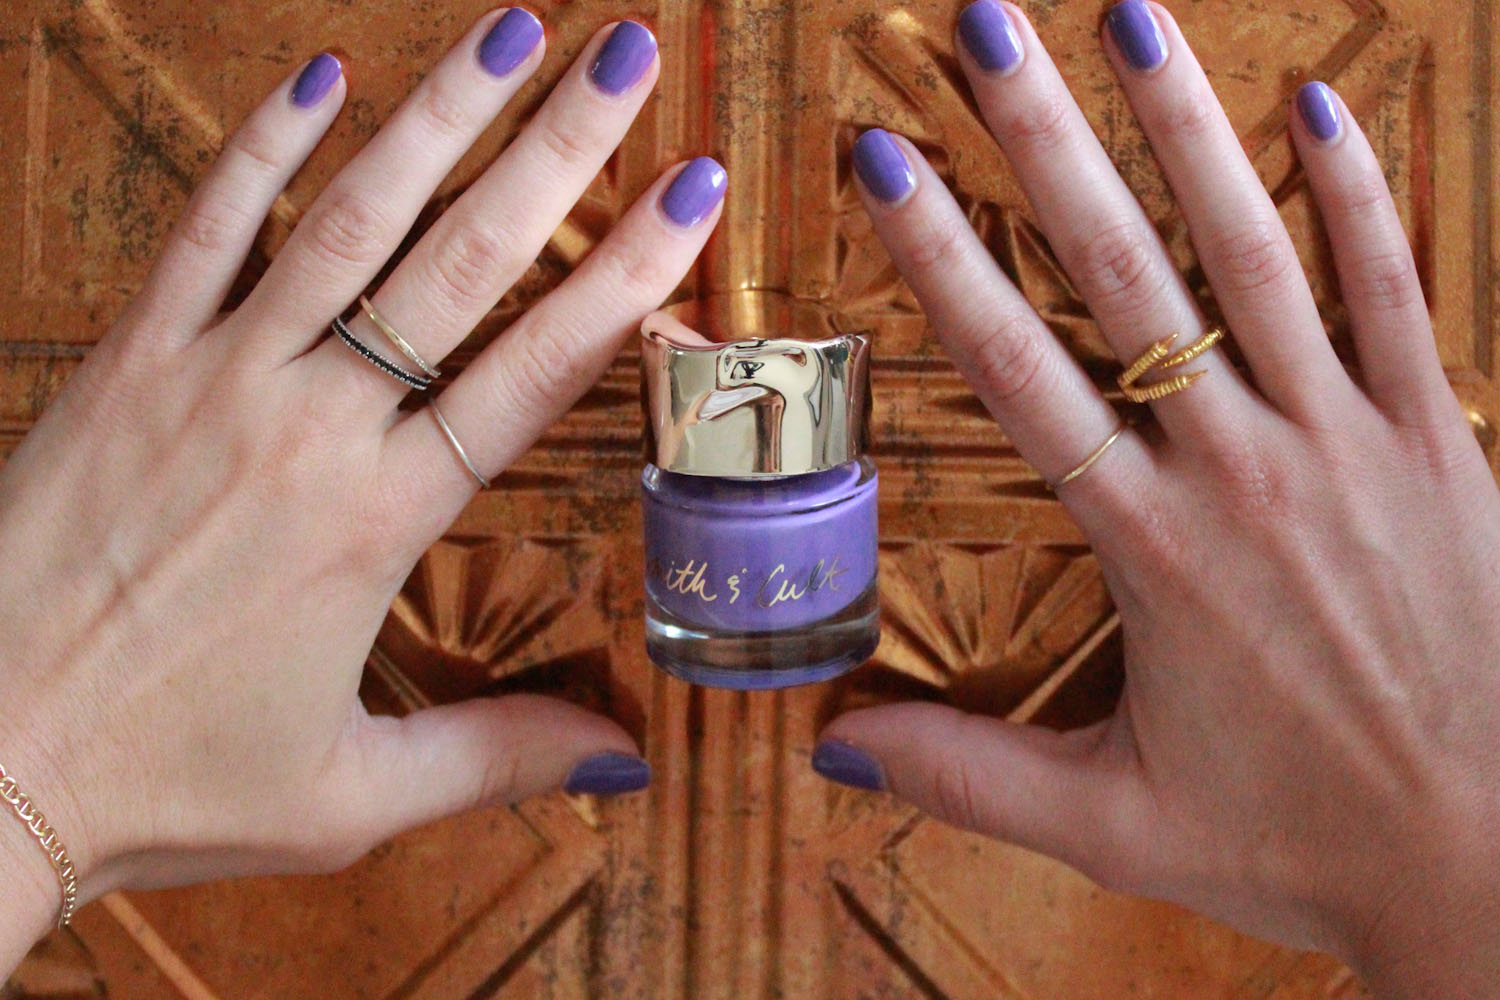 Smith & Cult Nail Polish in Check The Rhyme